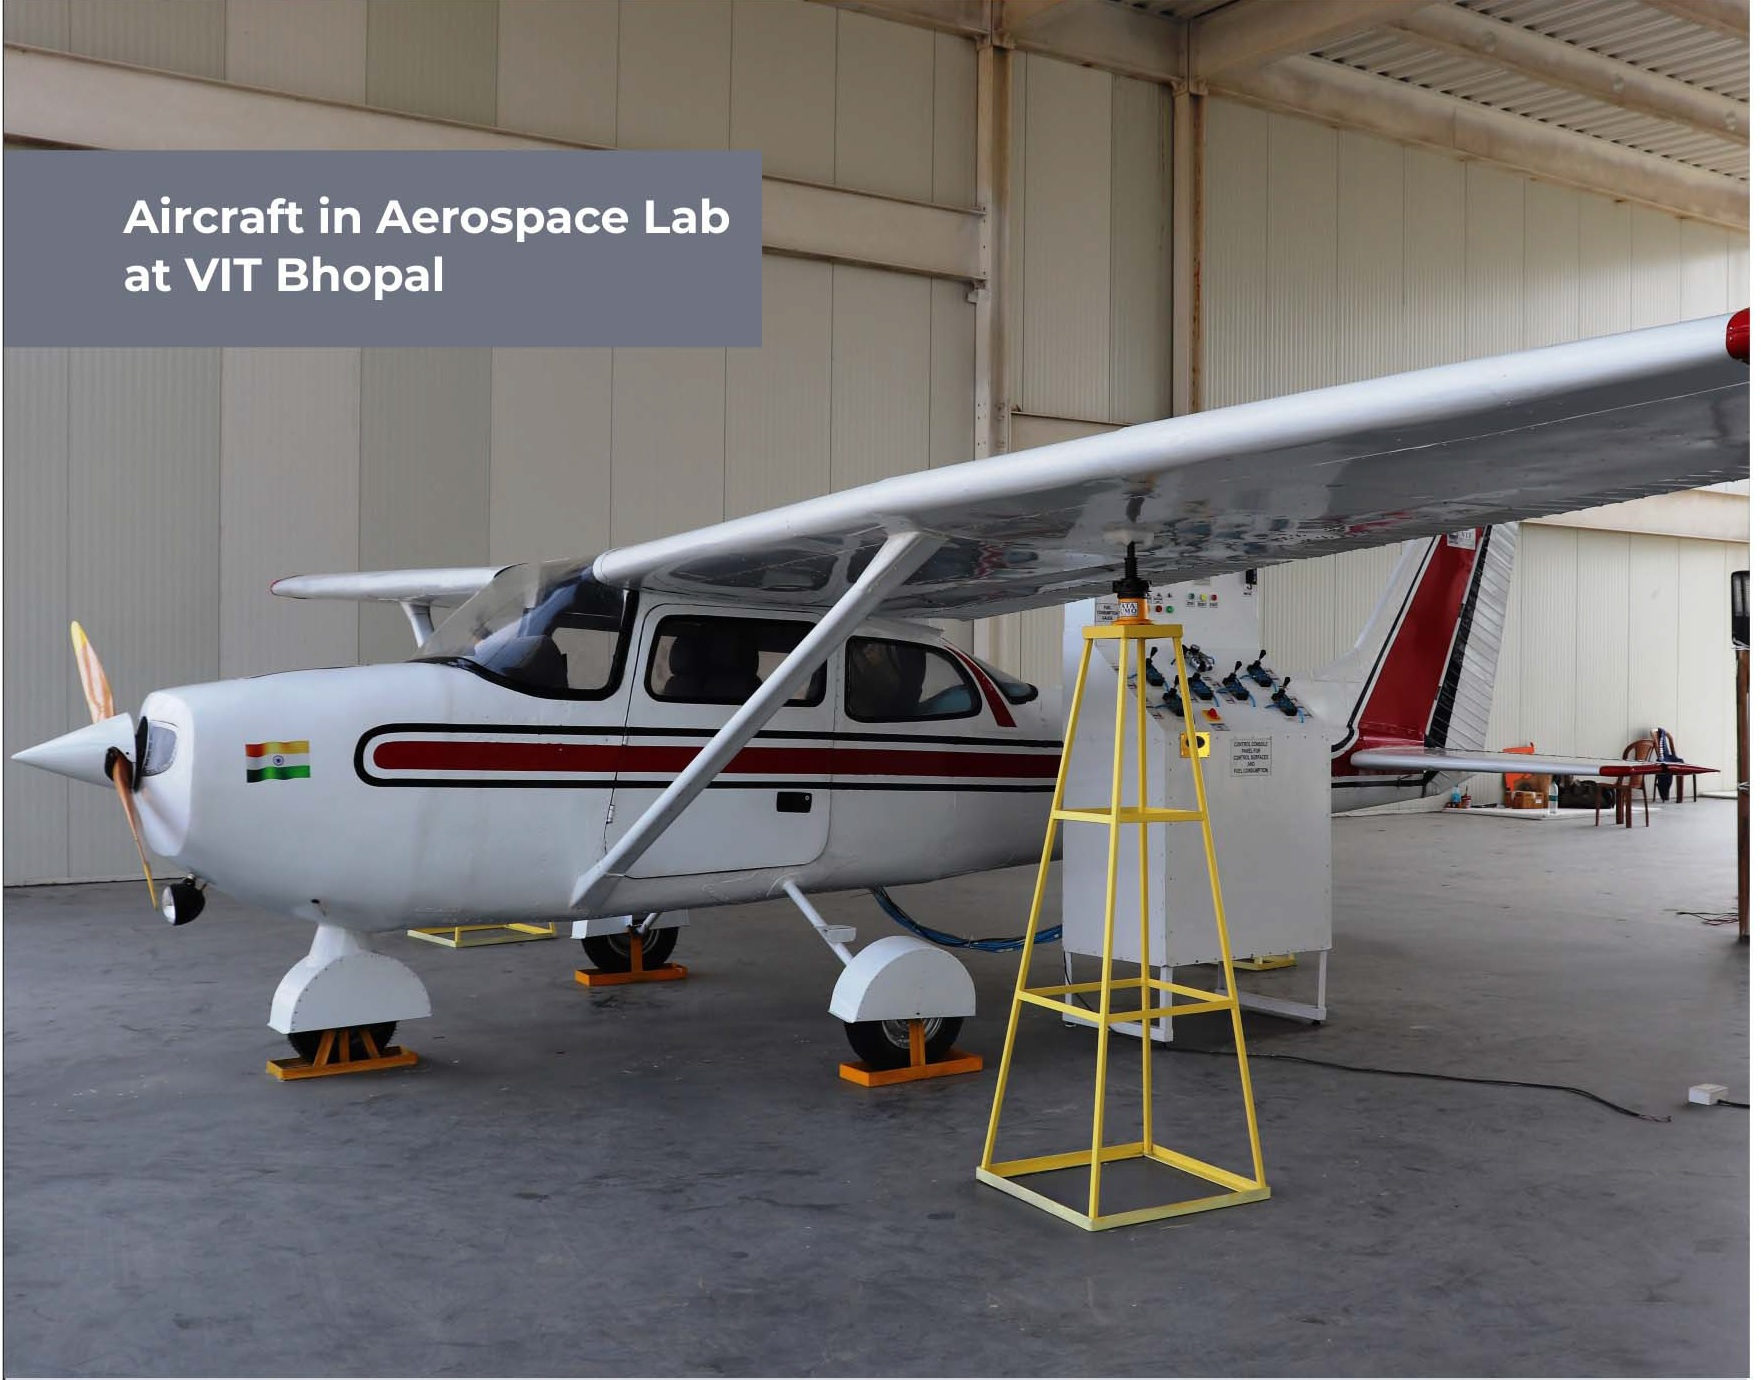 VIT Bhopal  - Best University in Central India -  aircraft